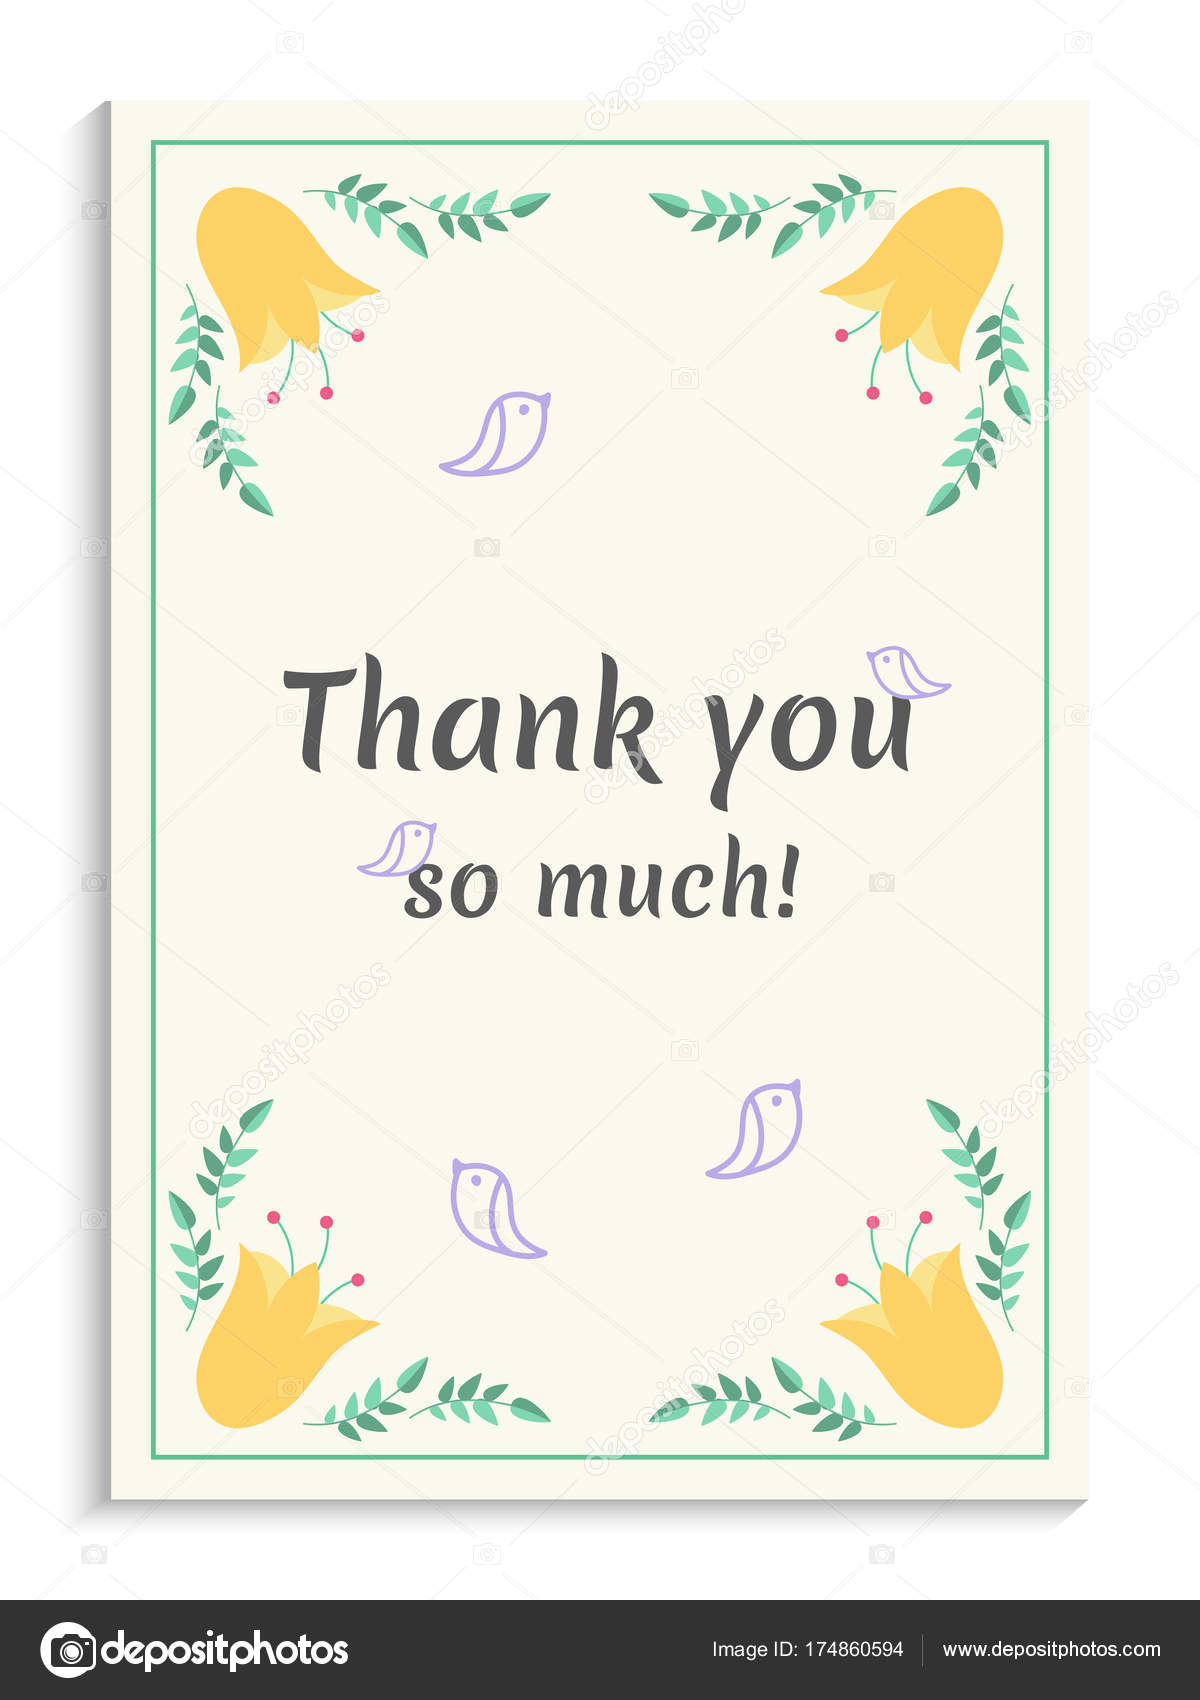 thank you greeting card design with beautiful yellow